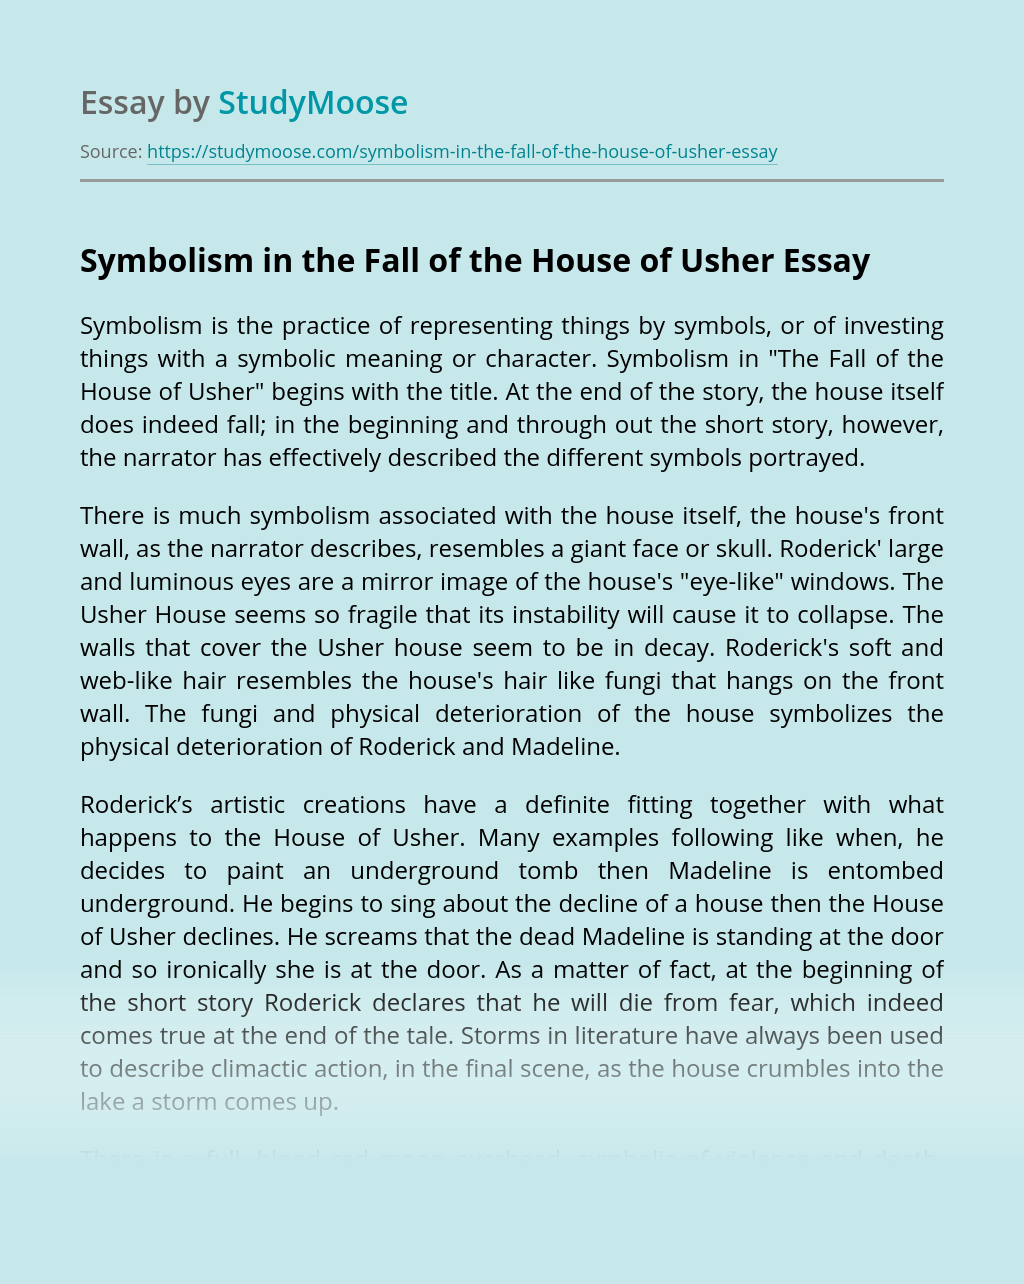 Symbolism in the Fall of the House of Usher